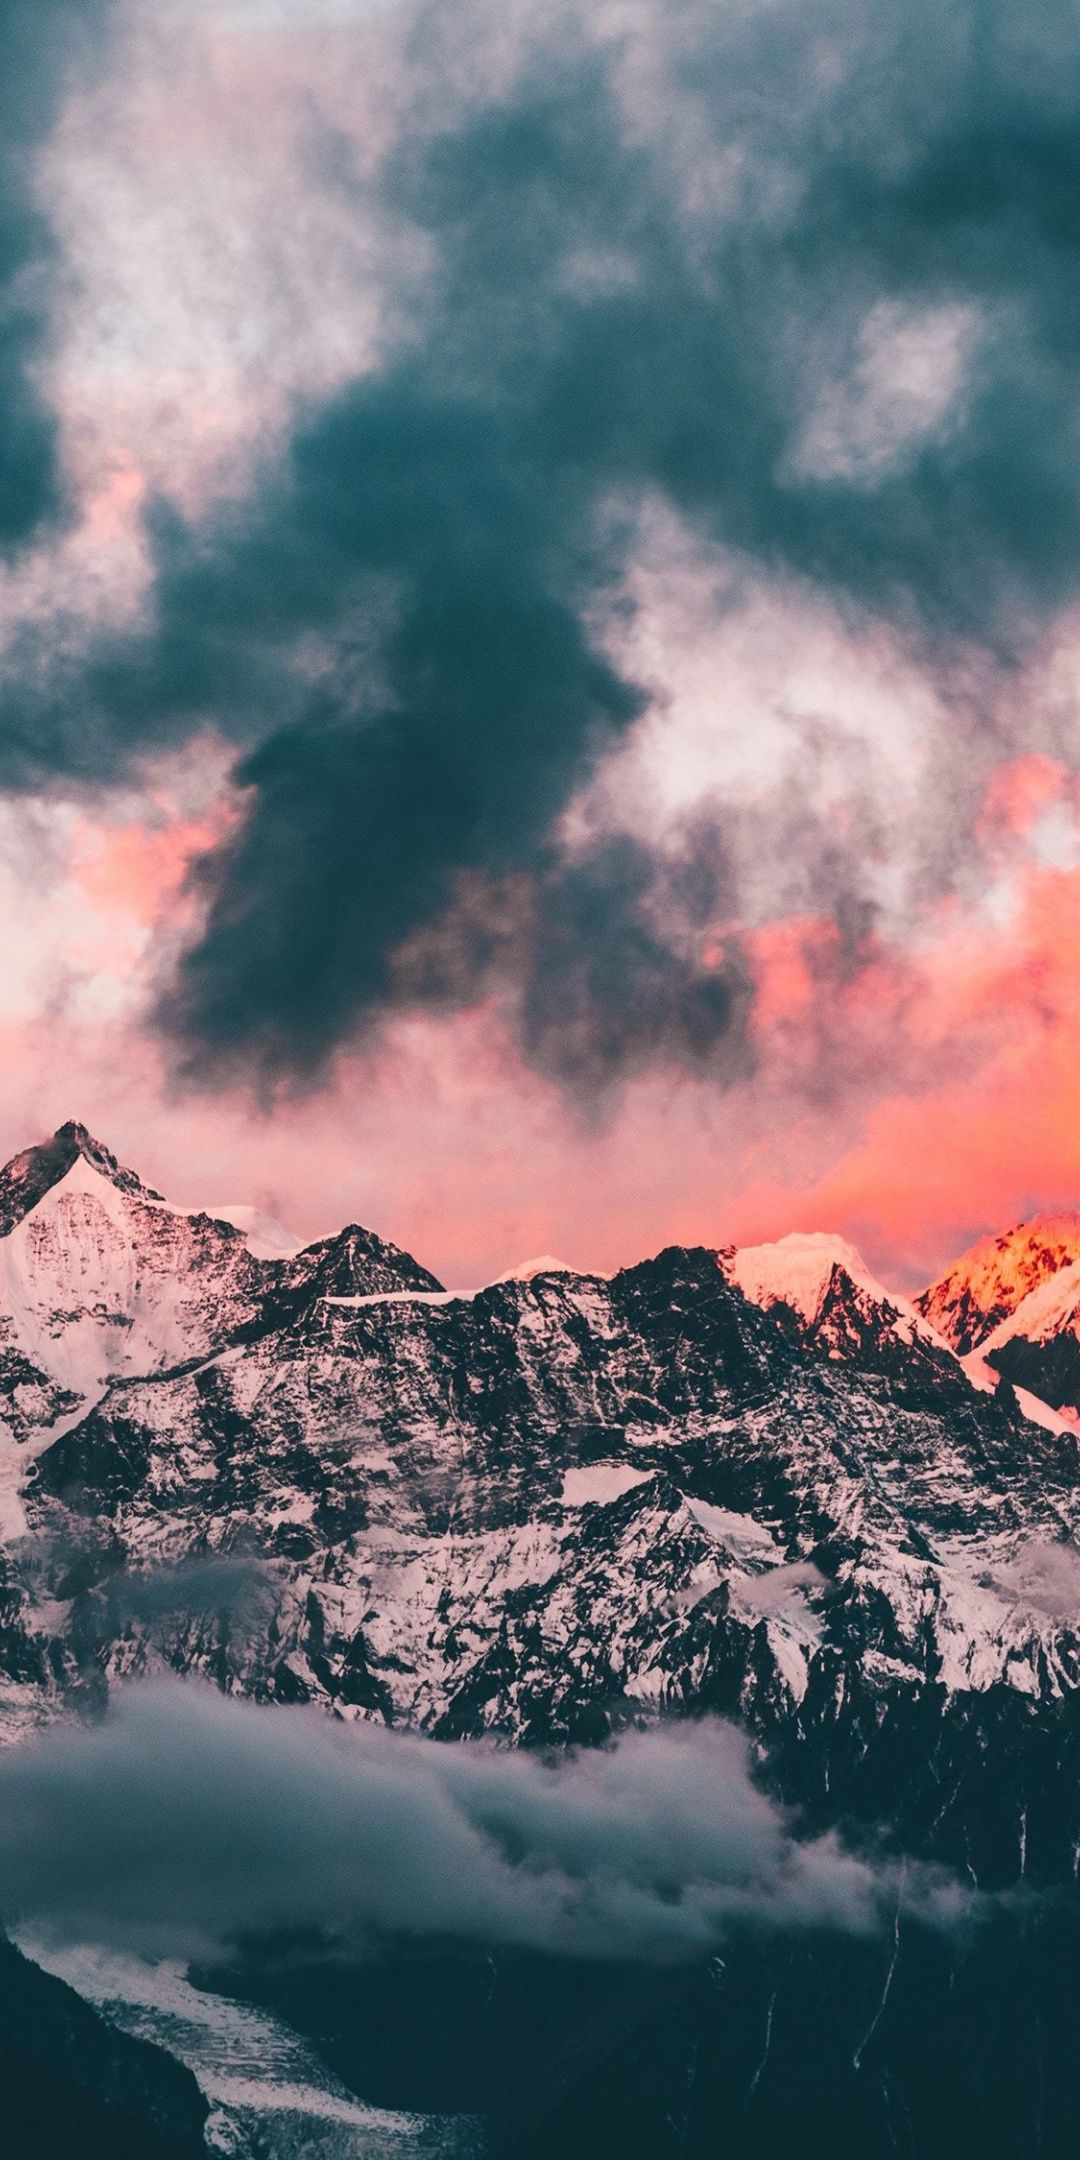 Aesthetic Mountains Wallpapers - Wallpaper Cave